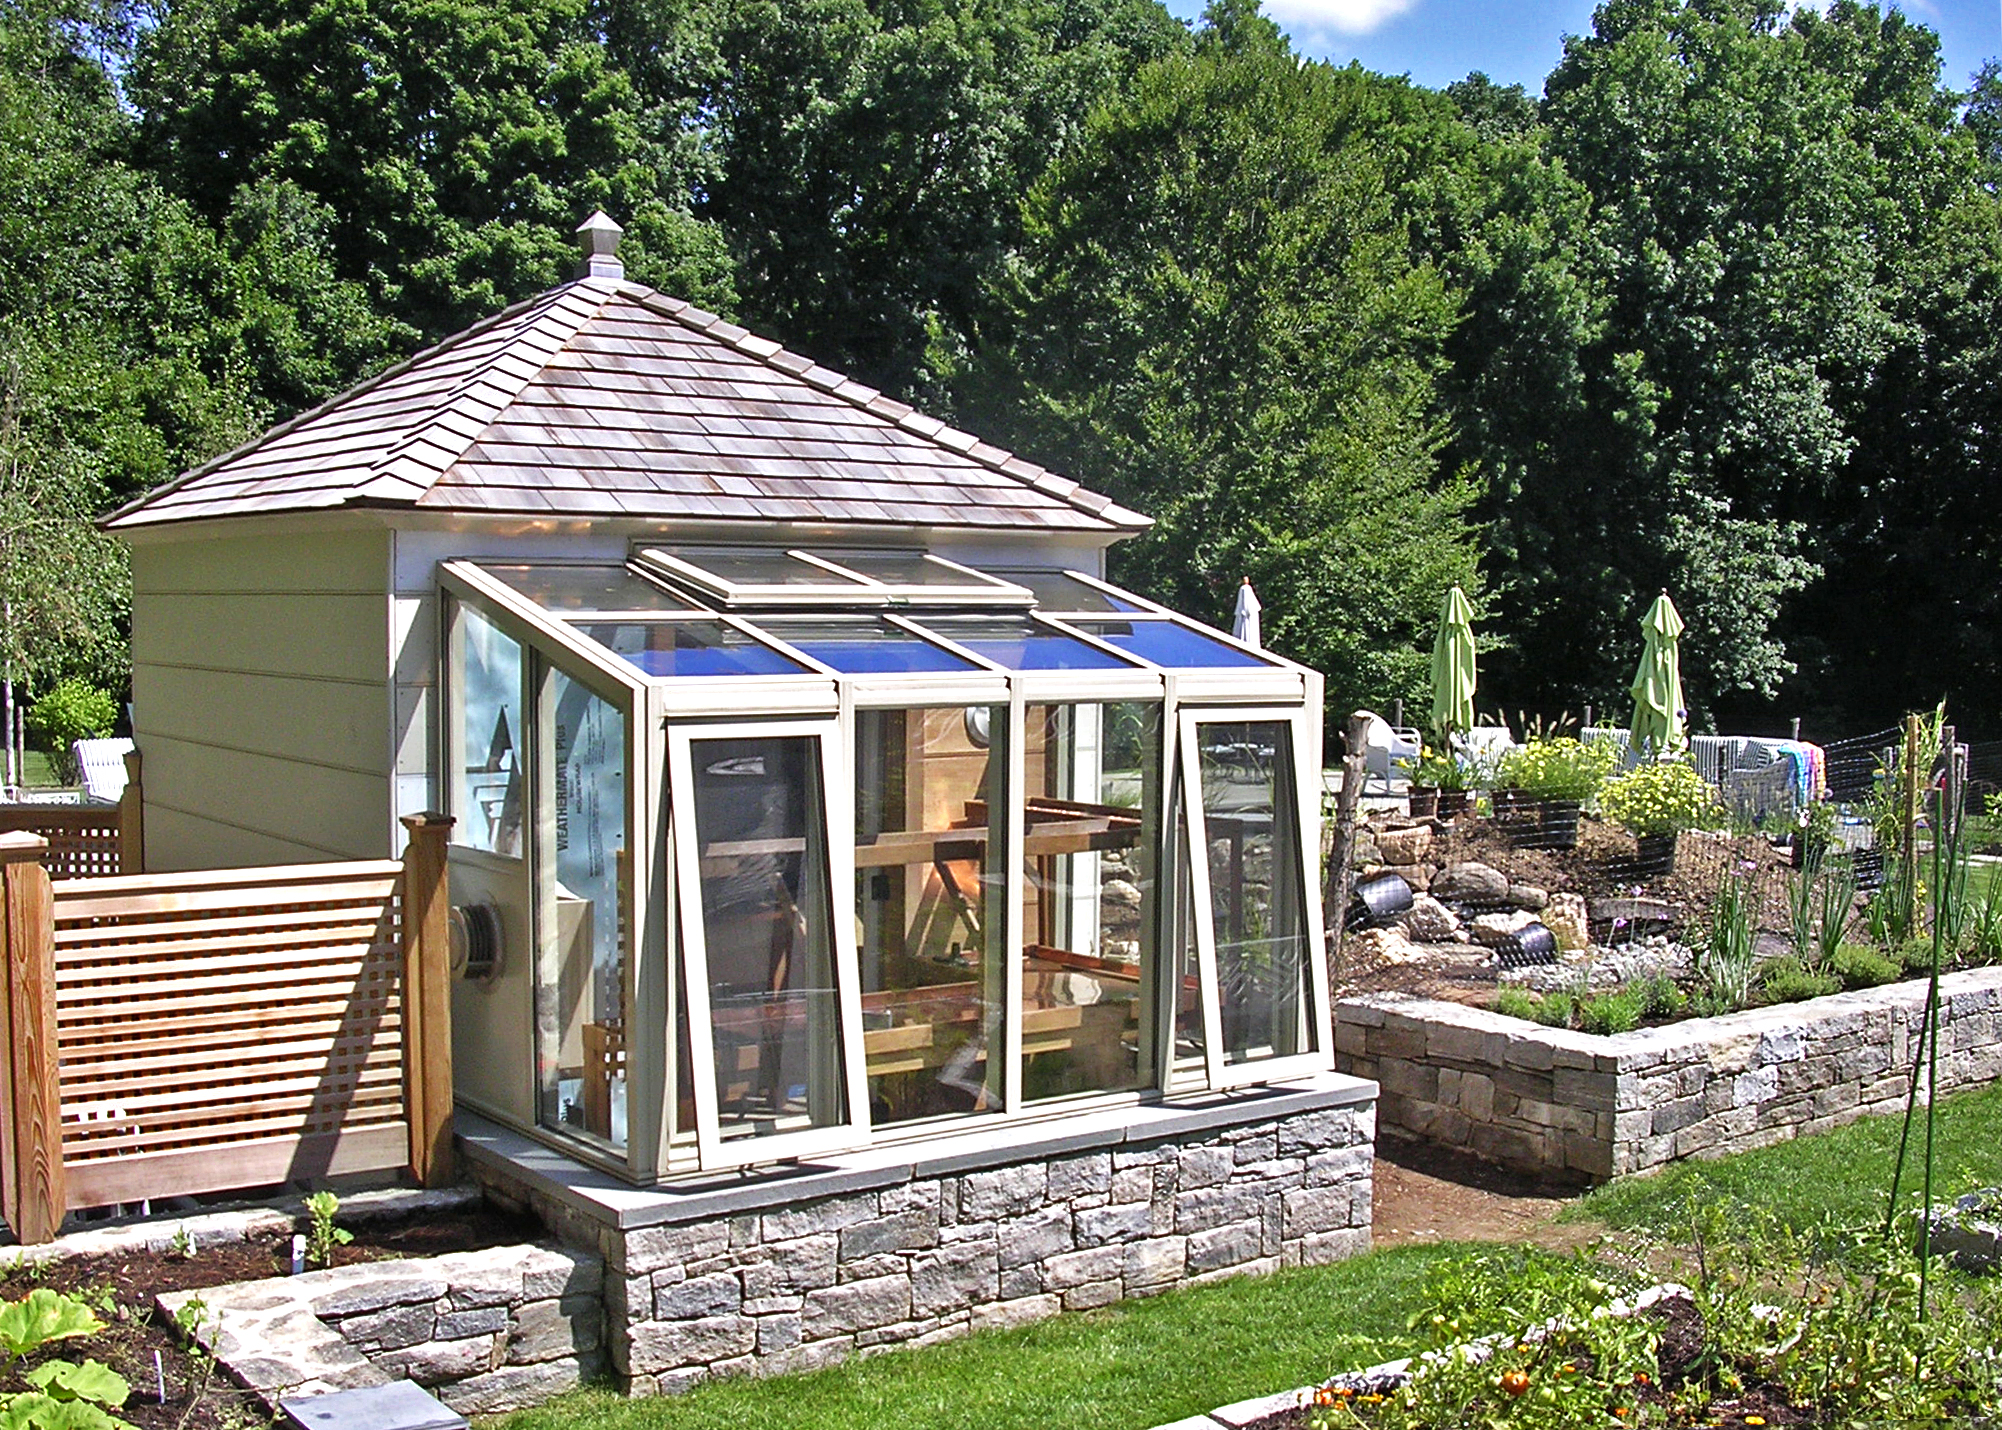 Straight eave lean-to greenhouse with 2 gable ends.